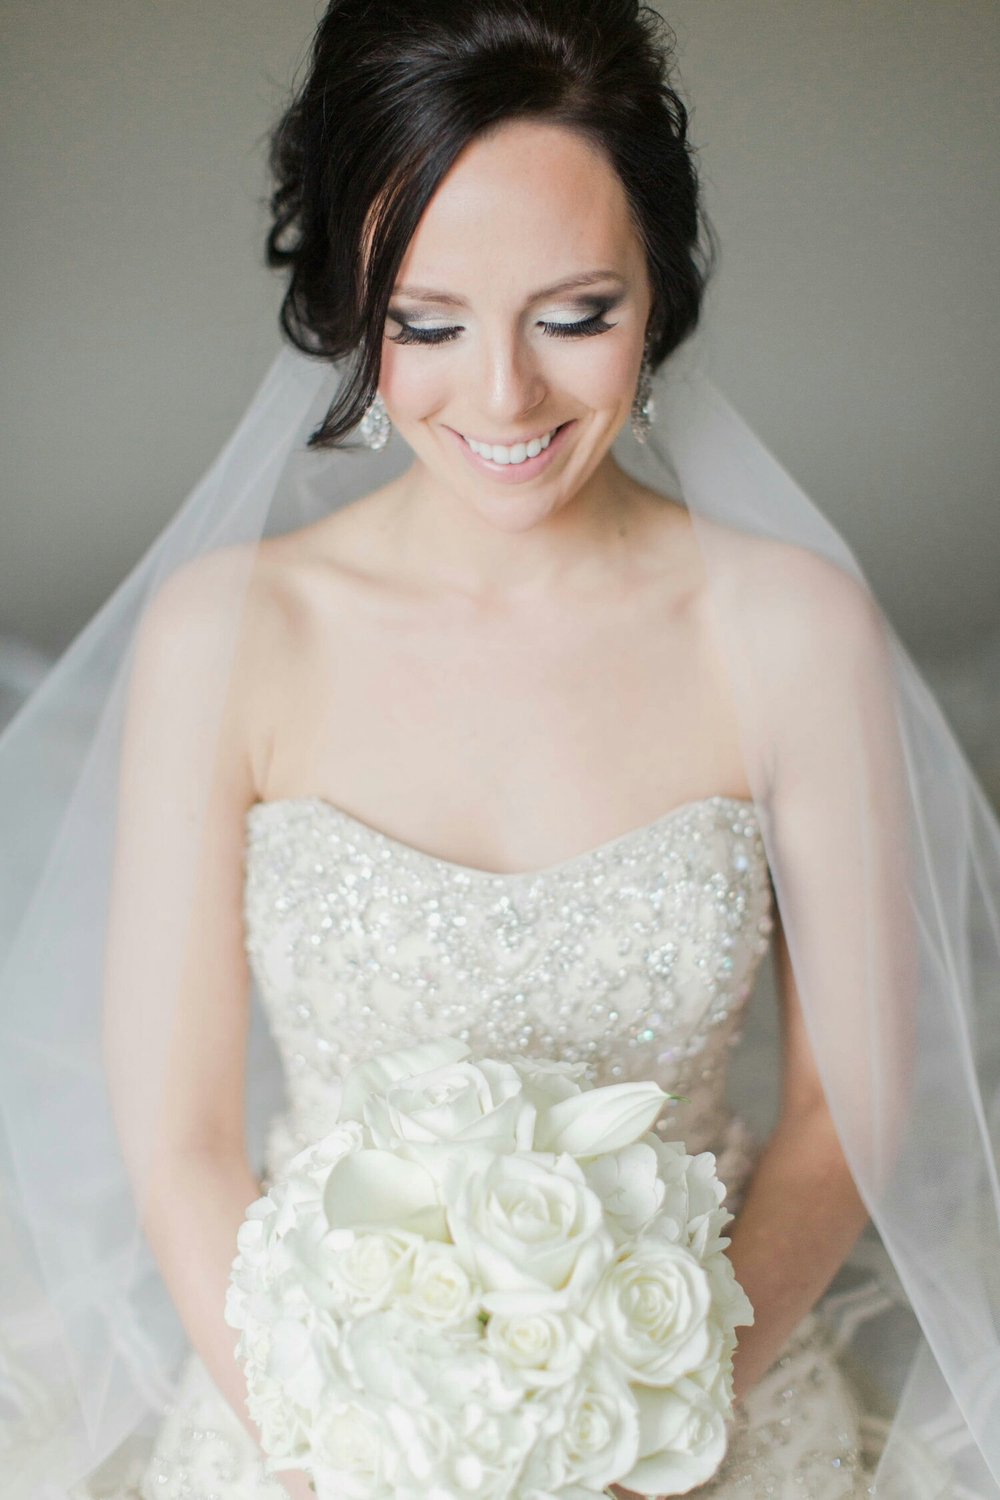 Bridal makeup and hair Ancaster Ontario